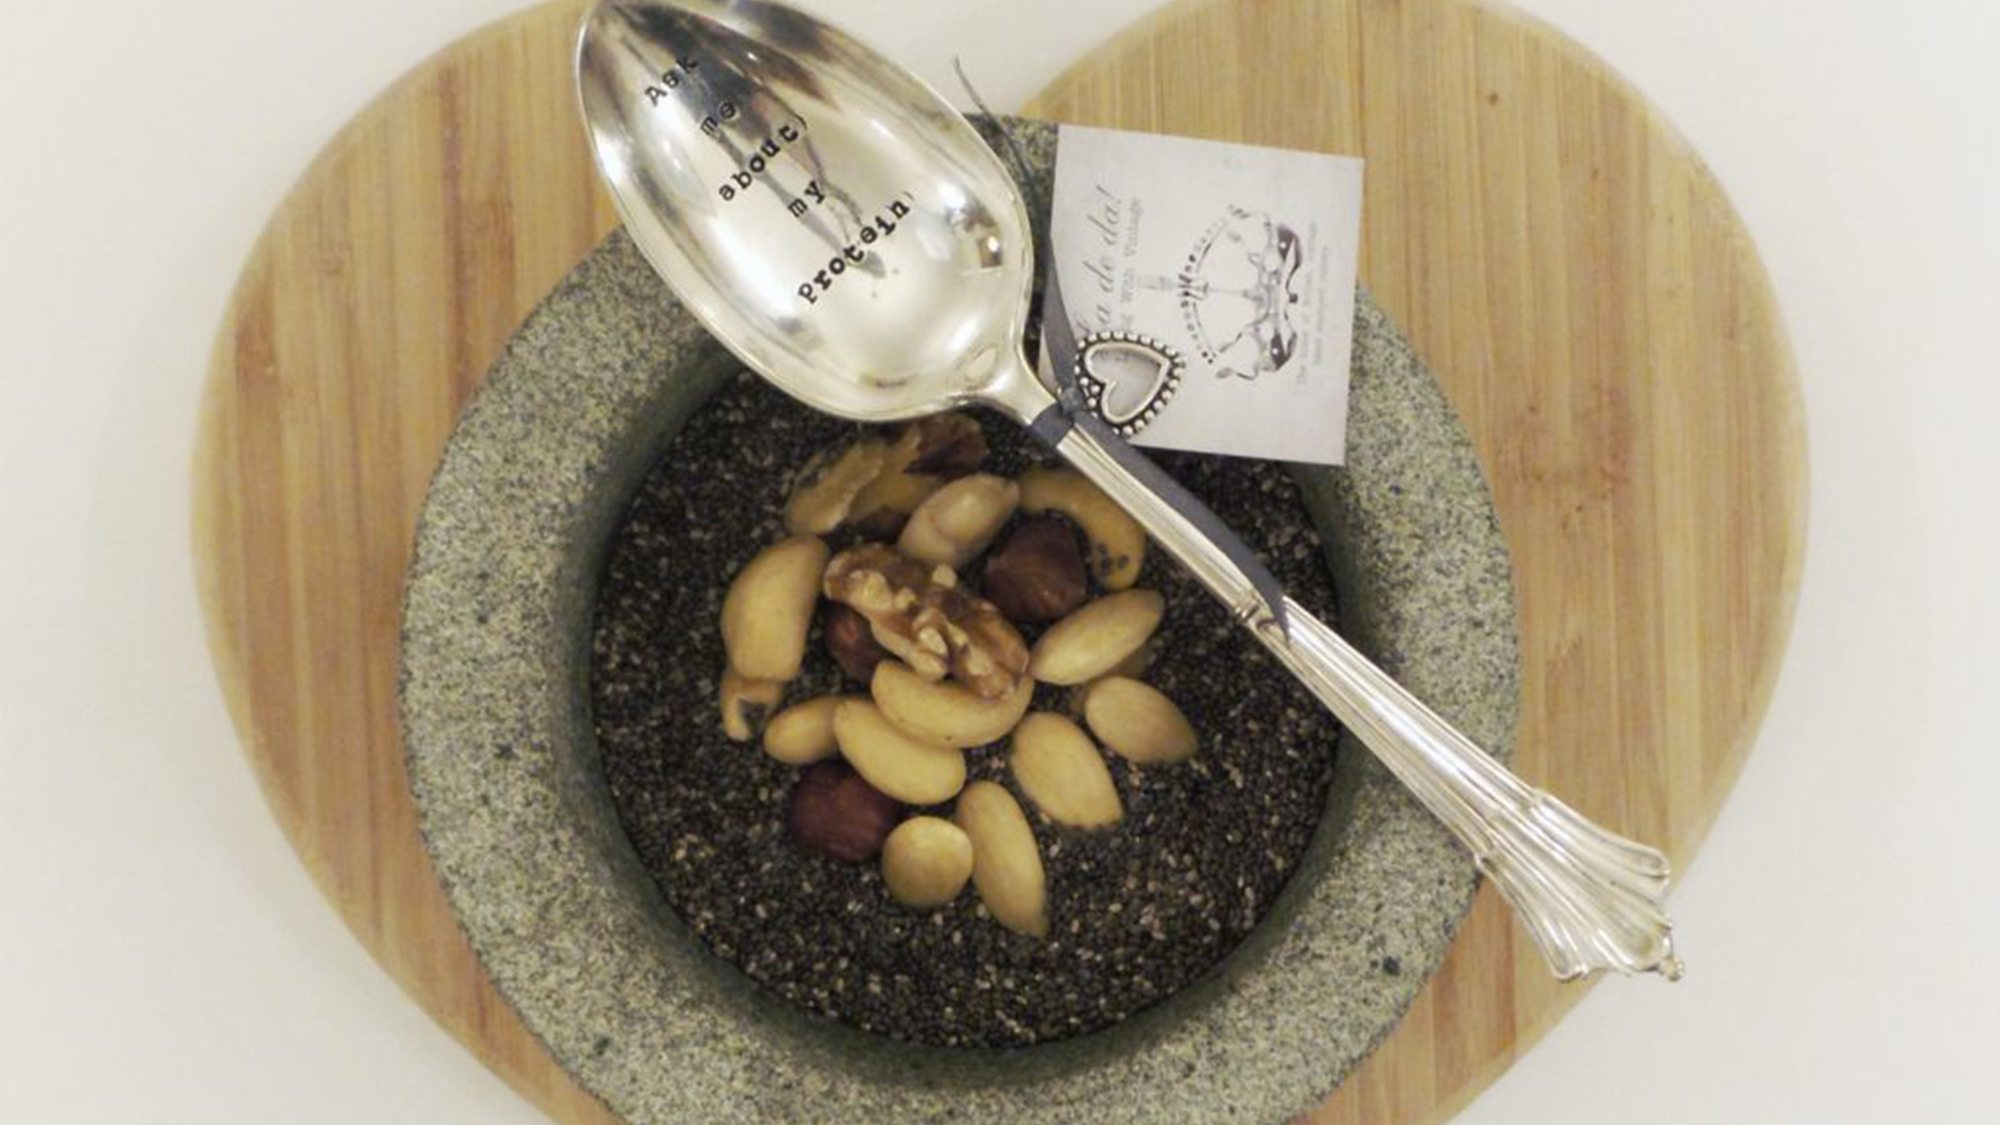 Table Spoon – 'Ask me about my protein'